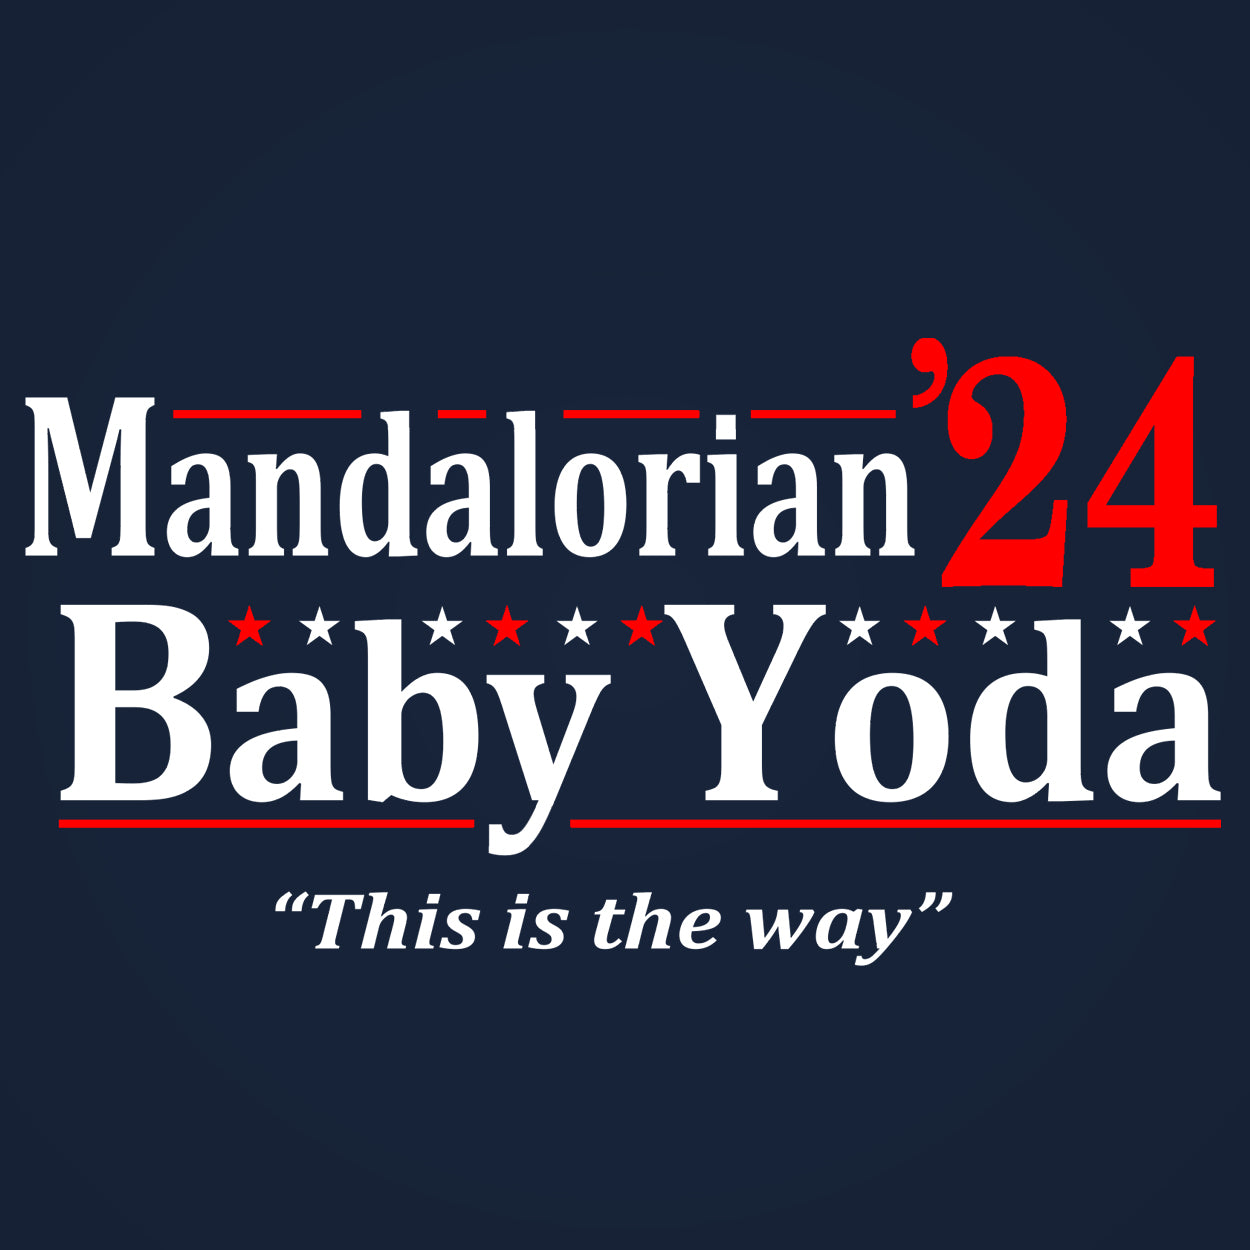 Mandalorian Baby Yoda 2024 Election